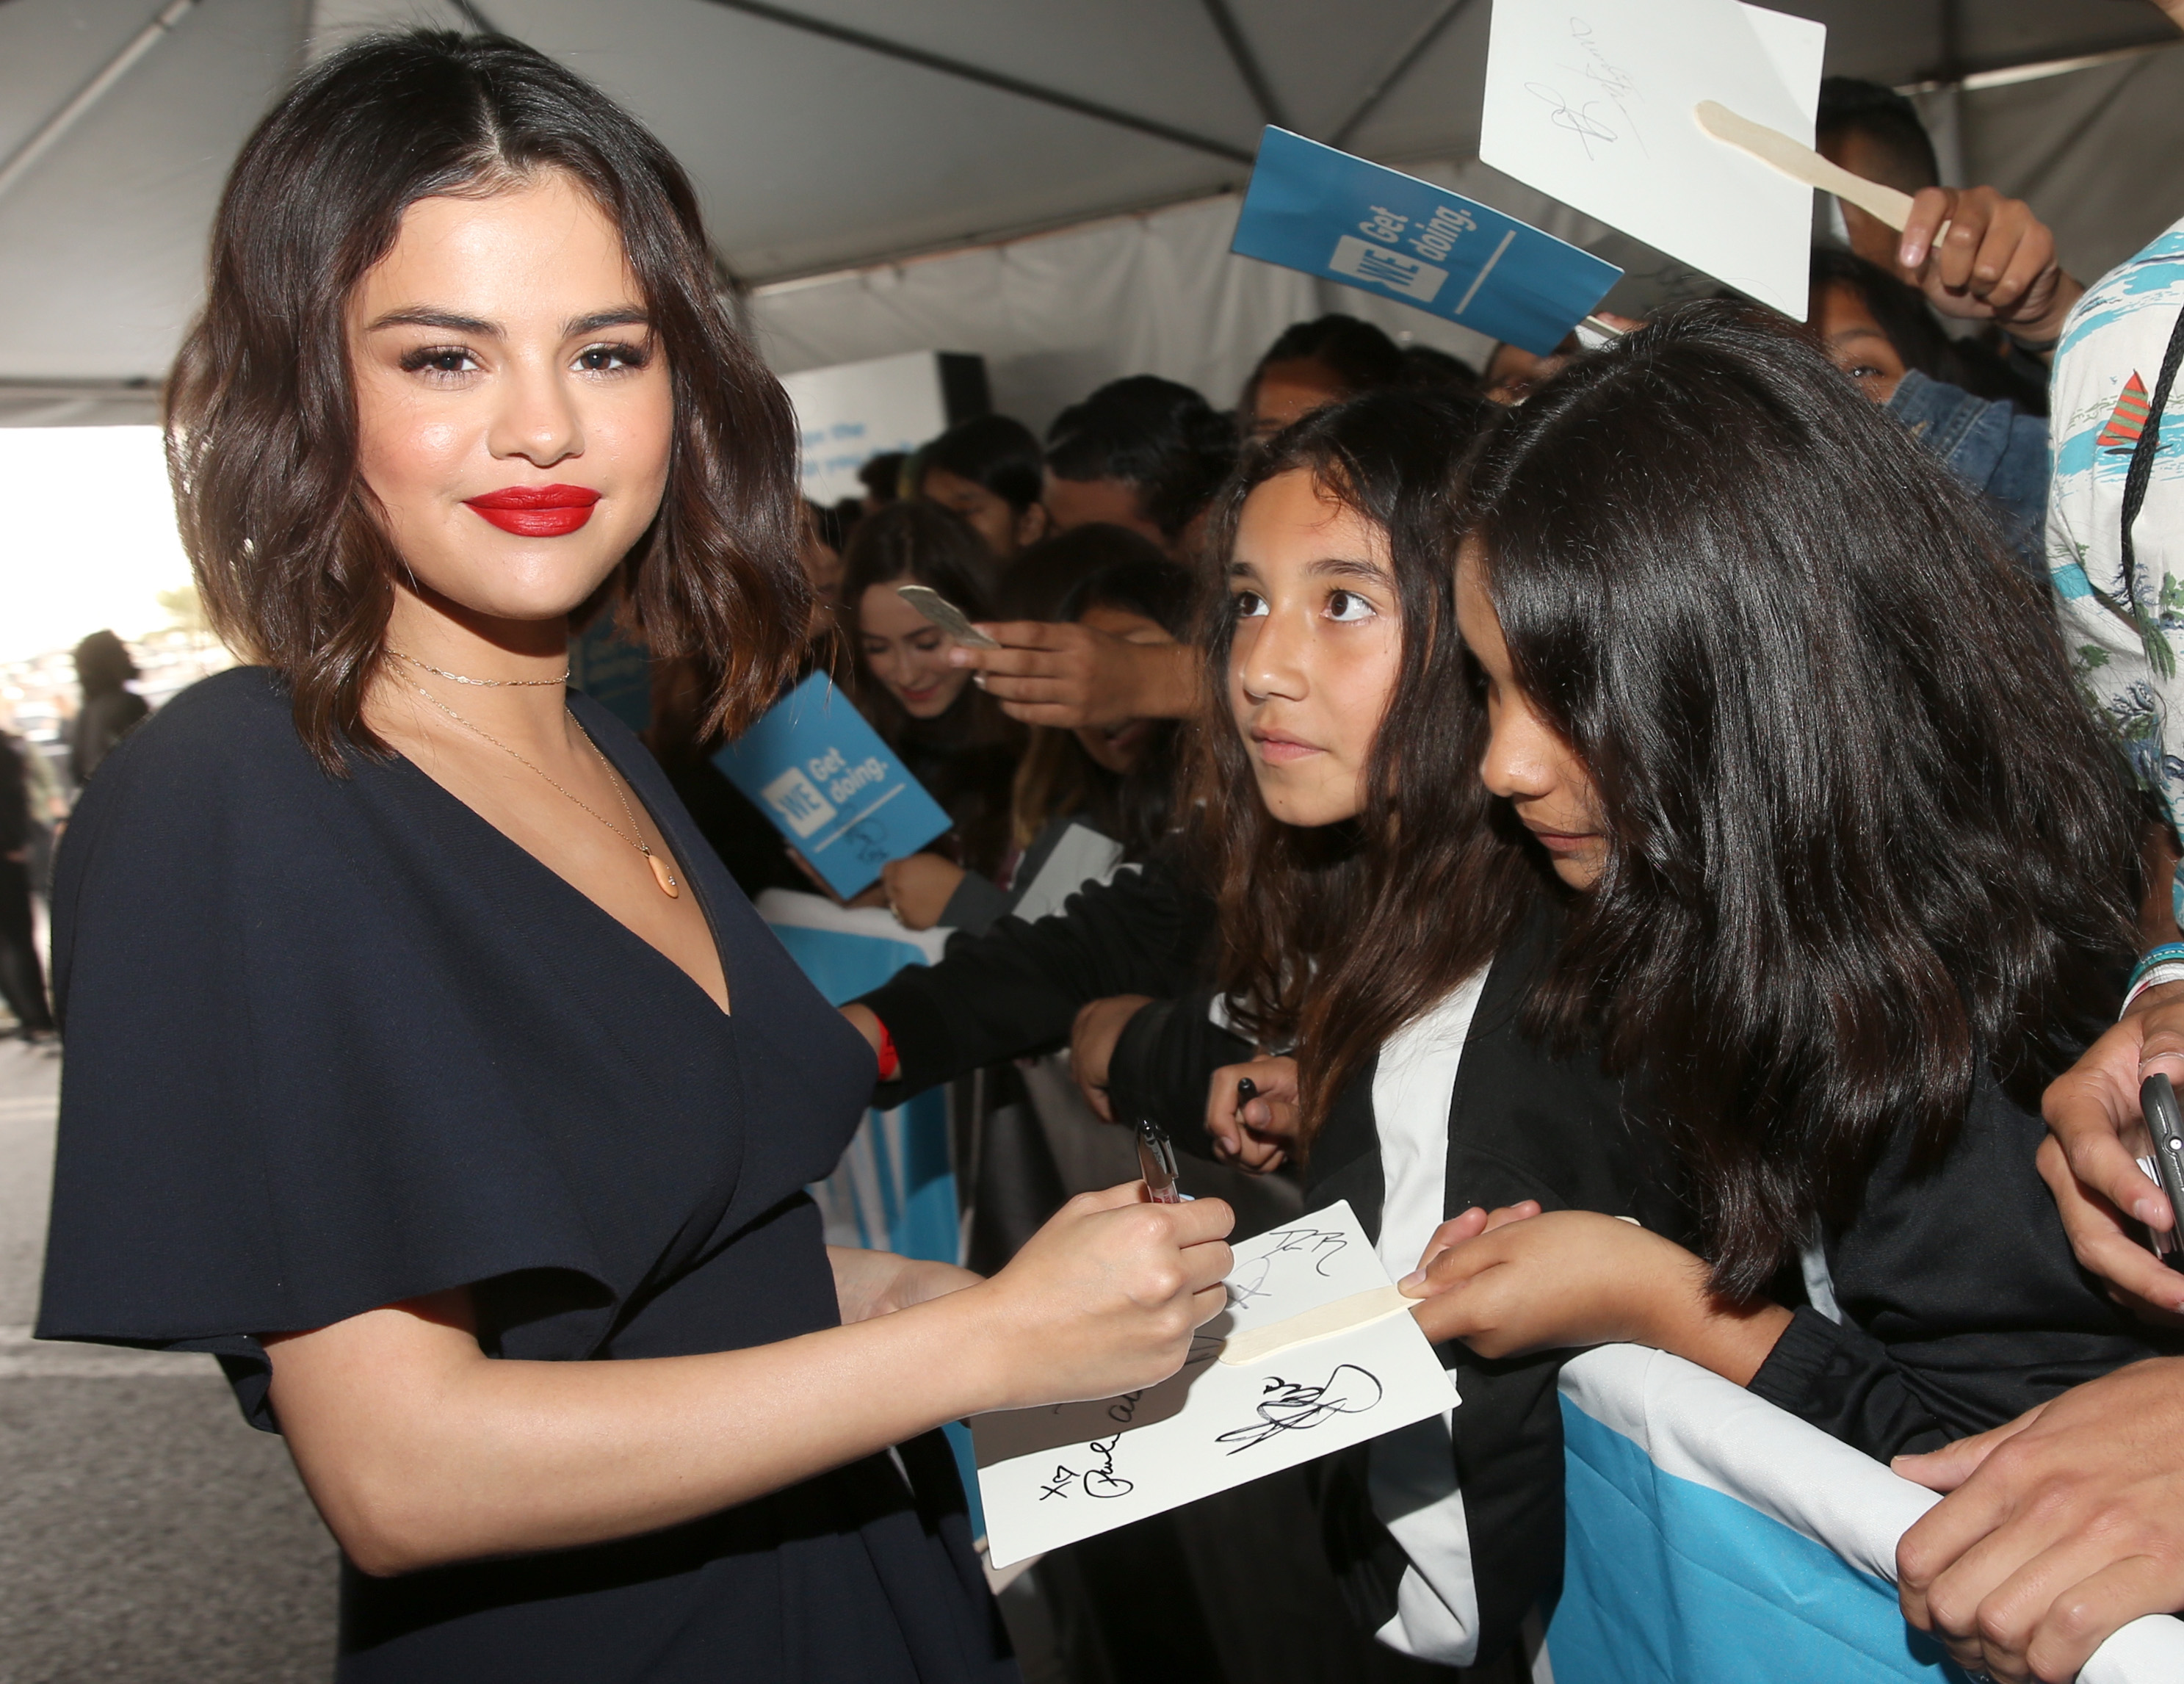 Selena Gomez Reveals Her Top 3 Favorite Things About We Day Watch